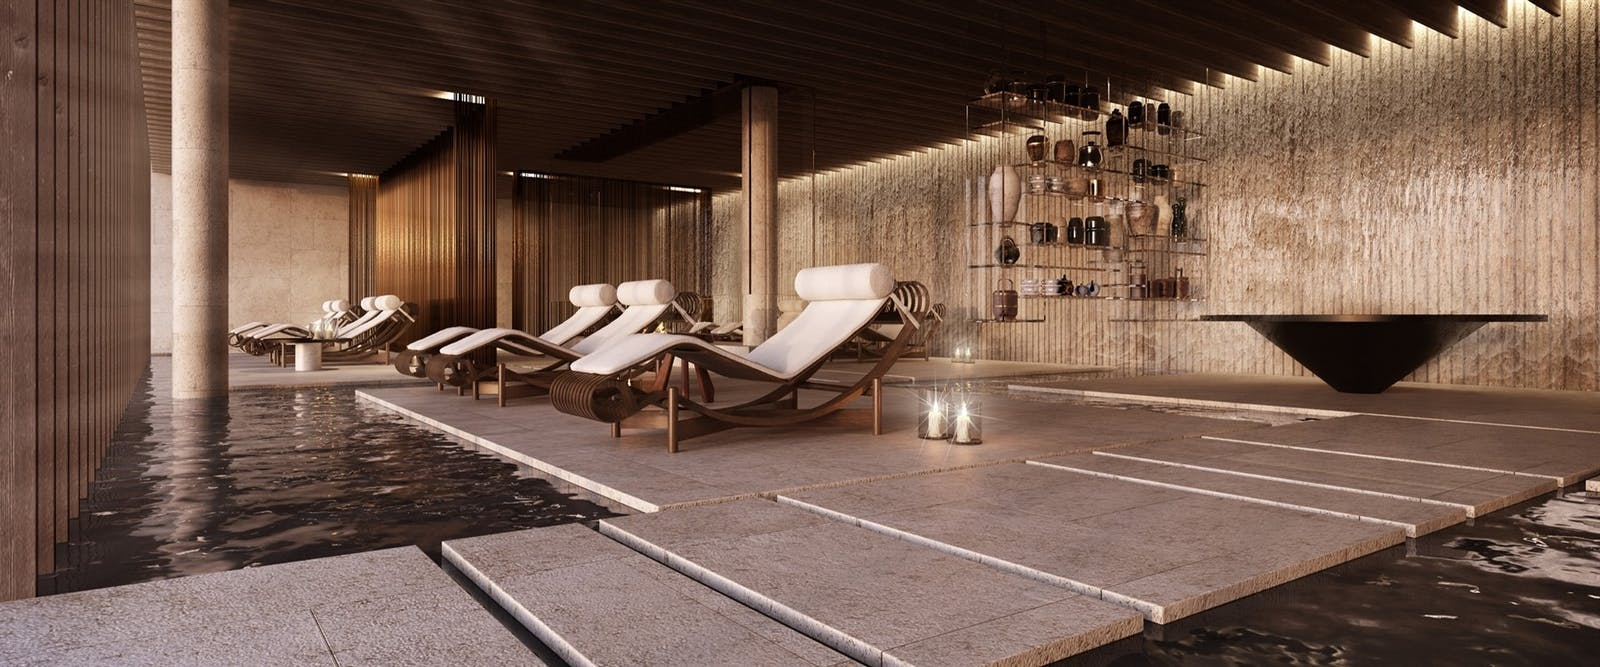 Spa, Grand Park Hotel, Rovinj, Croatia